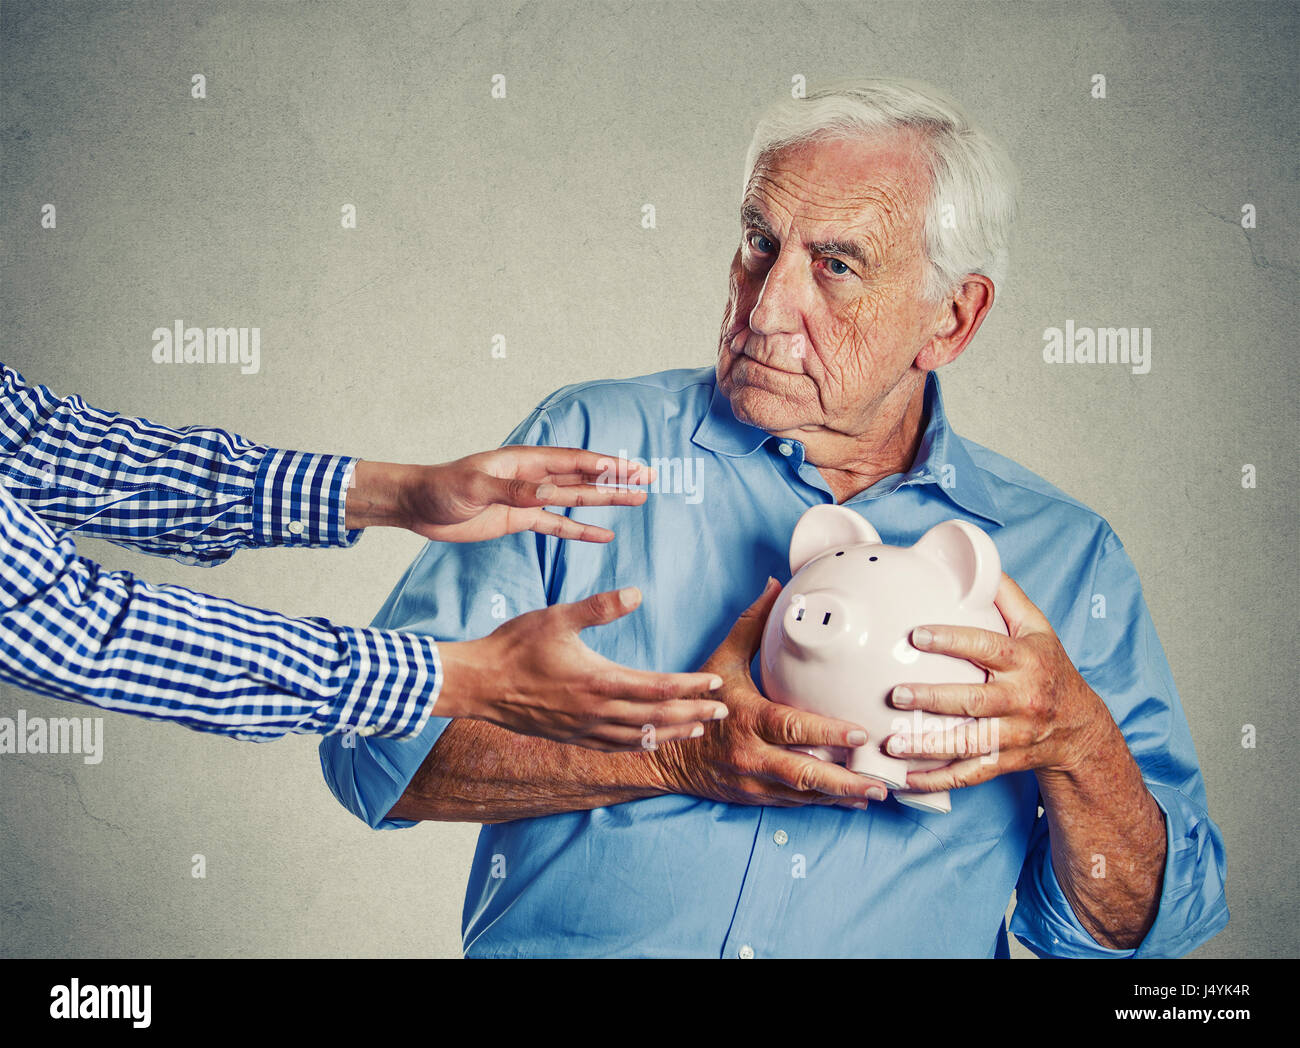 Closeup portrait senior man grandfather holding piggy bank looking suspicious trying to protect his savings from - Stock Image